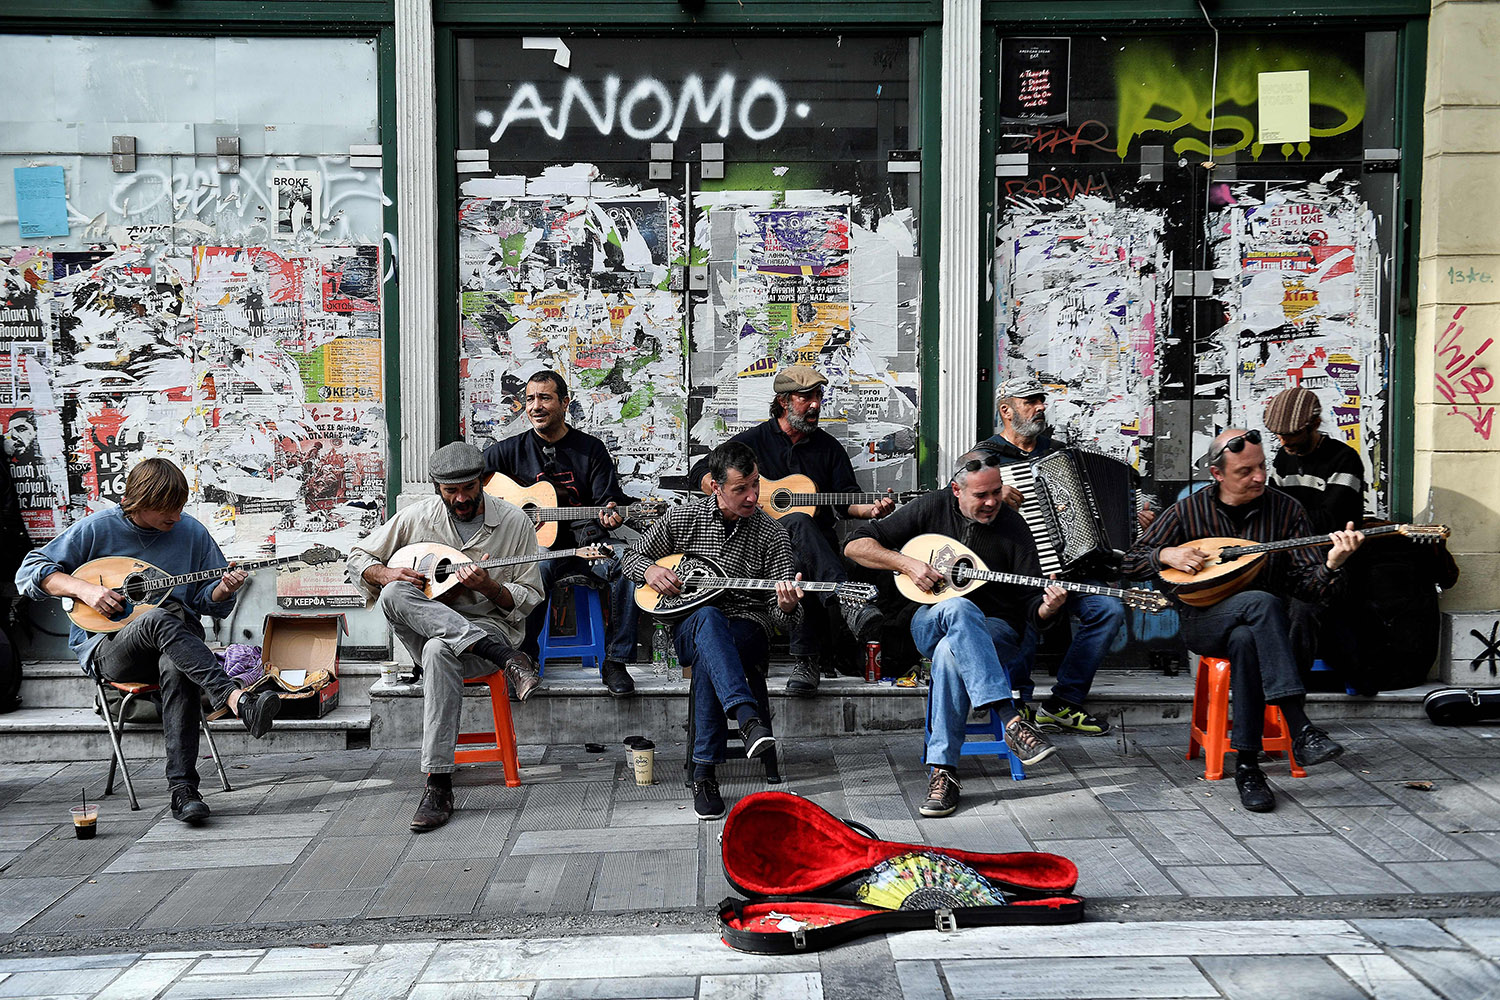 Musicians play Greek traditional music with Bouzoukis (front), guitars and an accordion in front of closed down stores in central Athens on Nov. 9. Louisa Gouliamaki/AFP/Getty Images